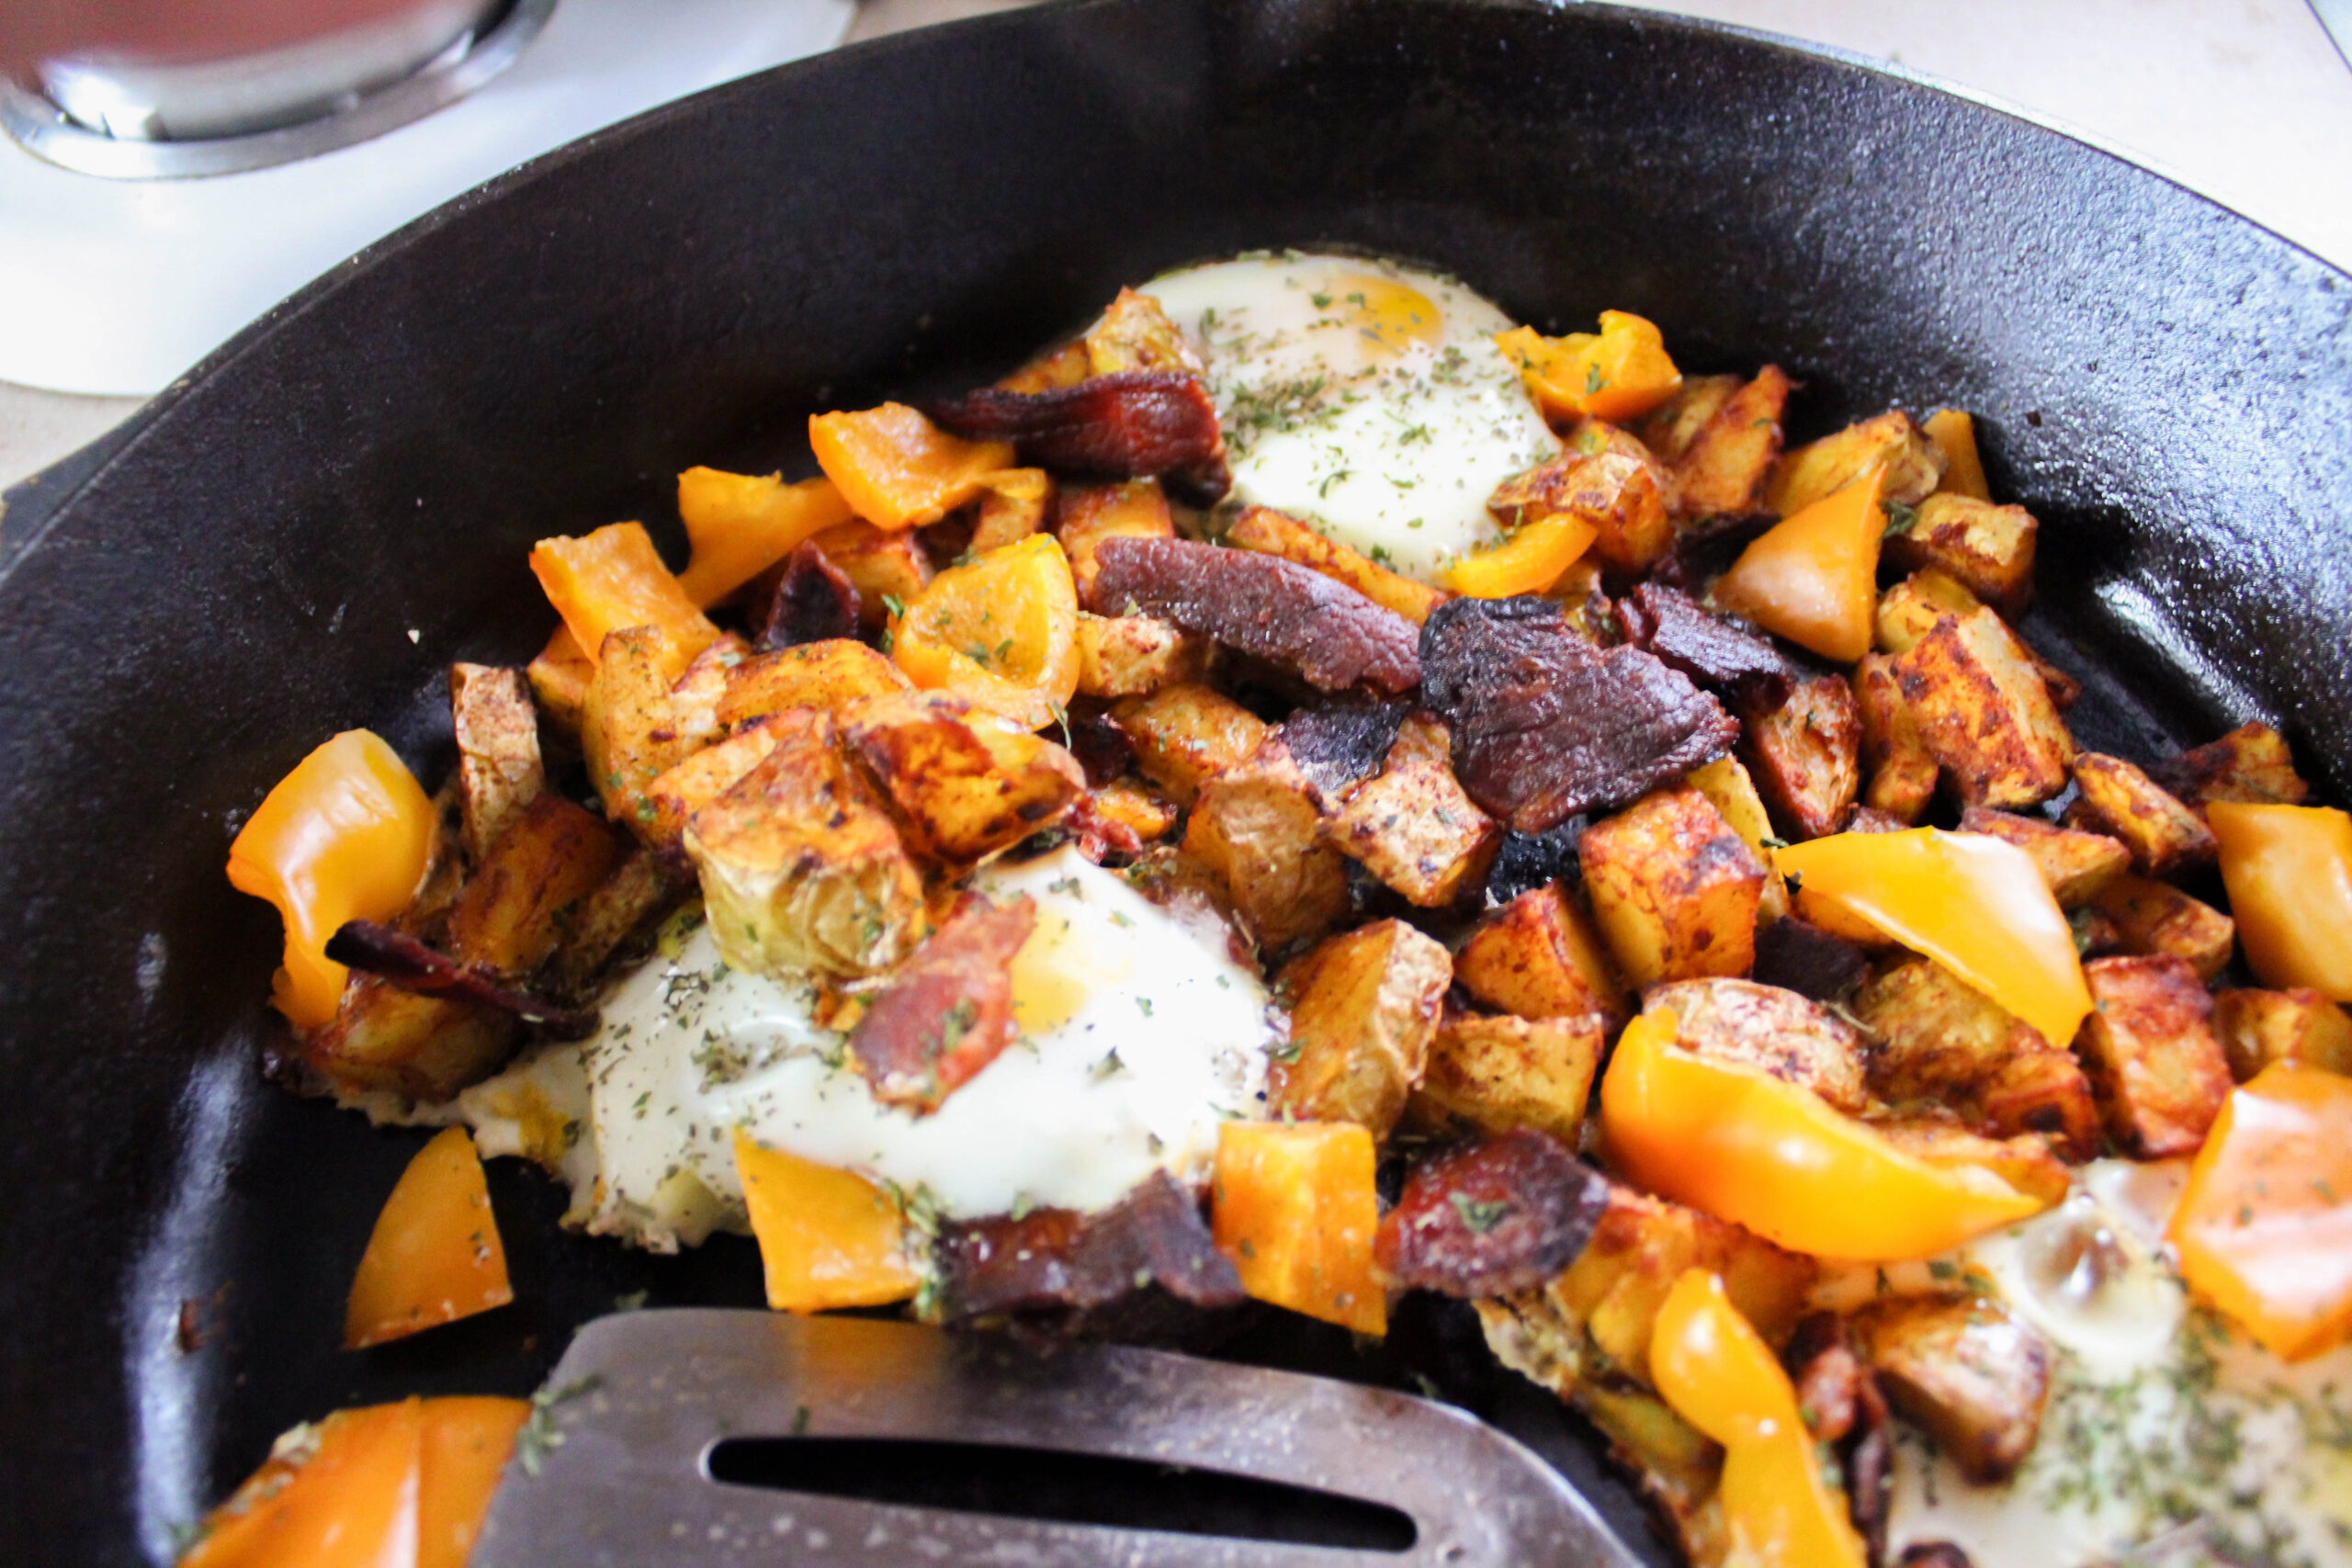 Sometimes you just need a hearty breakfast! My Simple Breakfast Skillet fits the bill! It's a Trim Healthy Mama Crossover and dairy-free